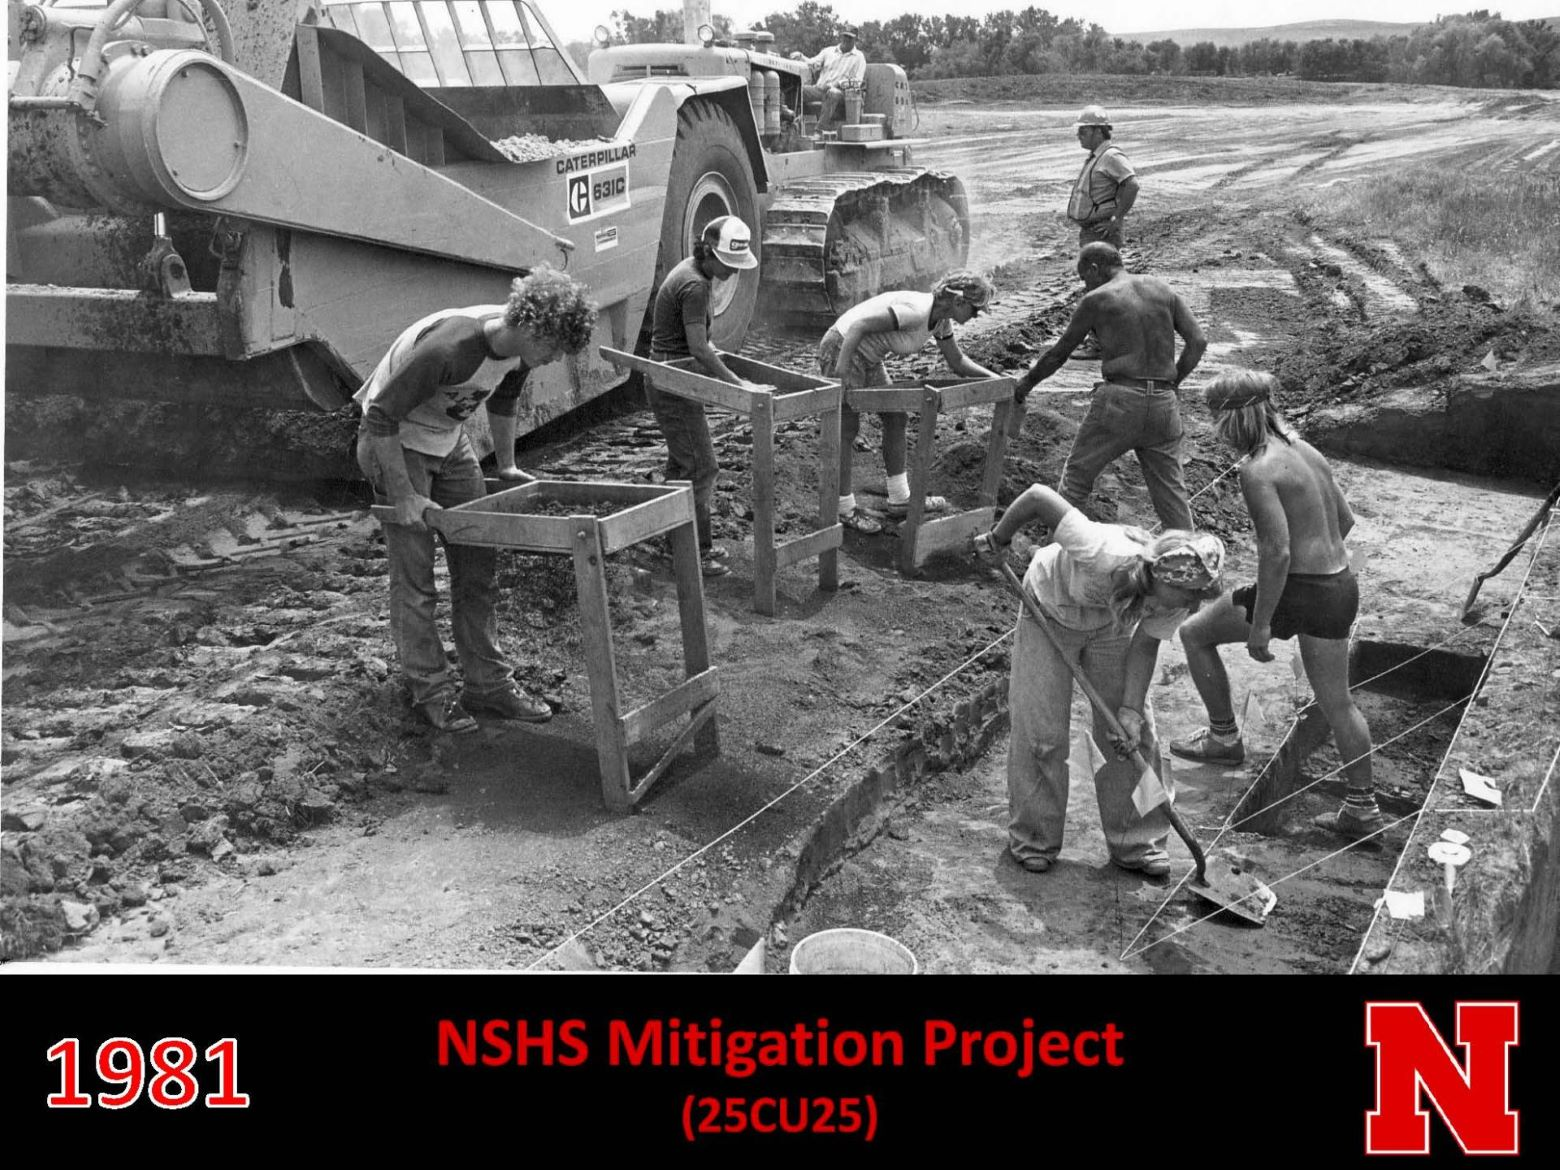 Student in the field working on NSHS Mitigation Project in 1981